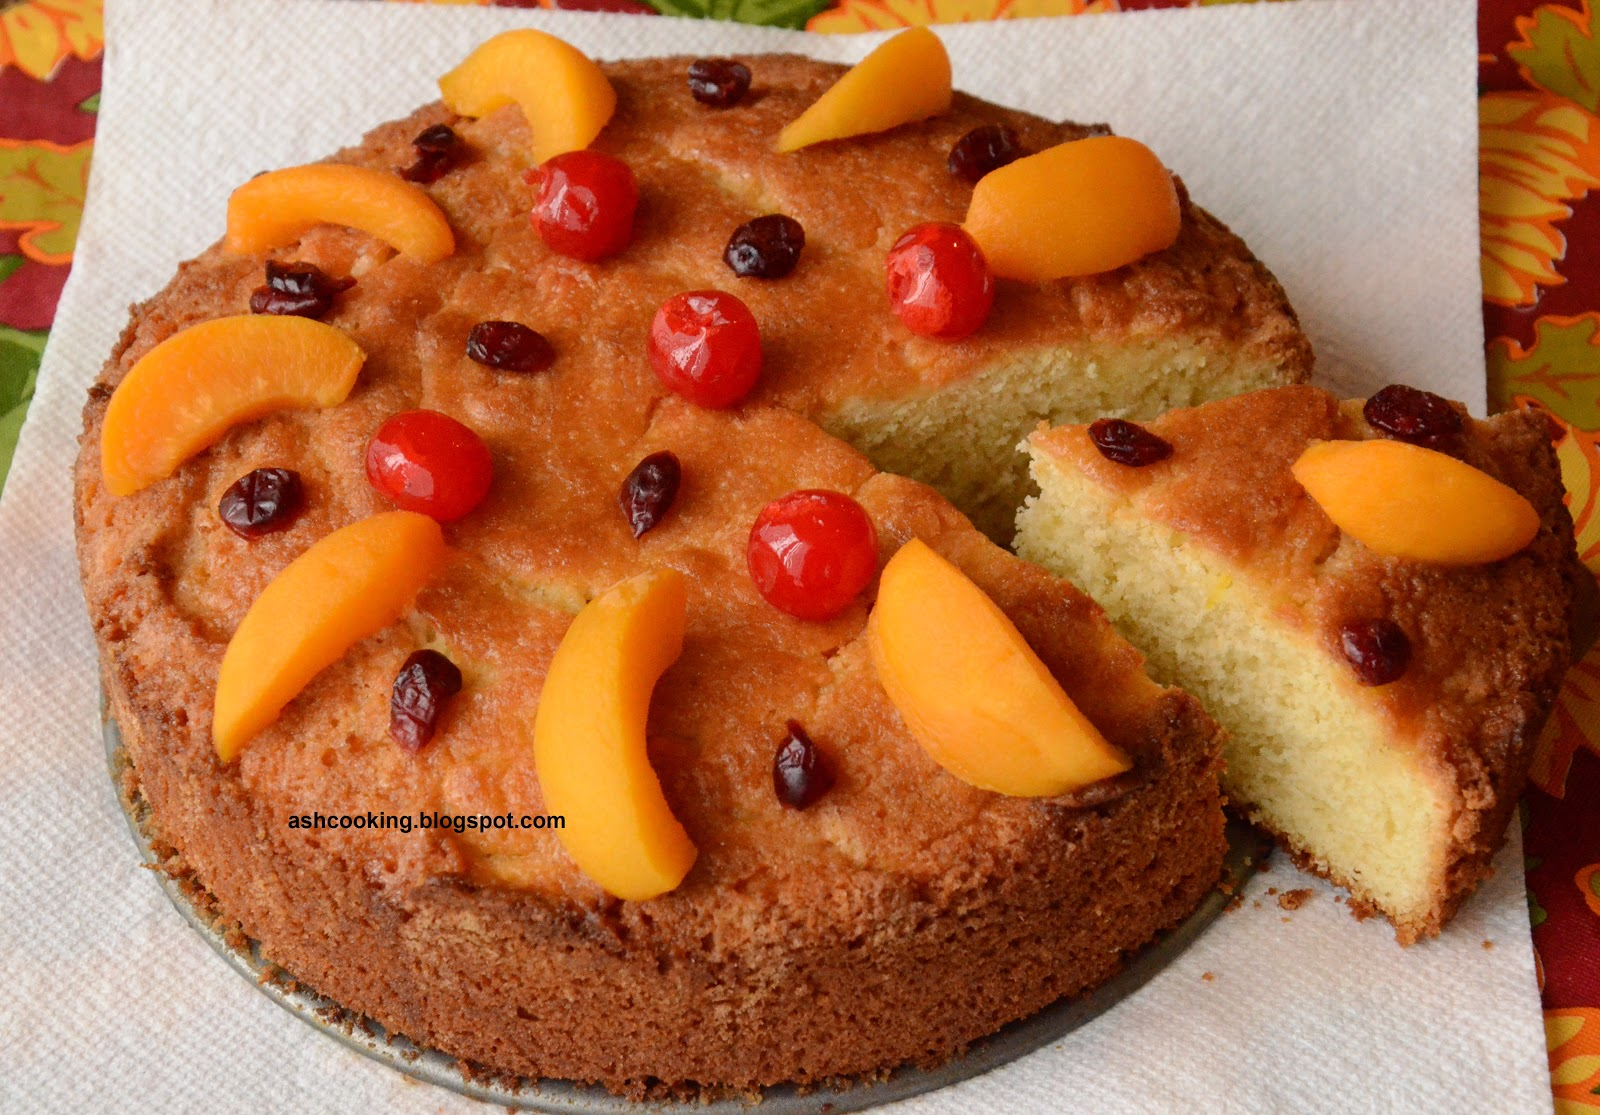 Cake With Fruit Topping : My Cookbook: Honey Glazed Fruit Topped Pound Cake